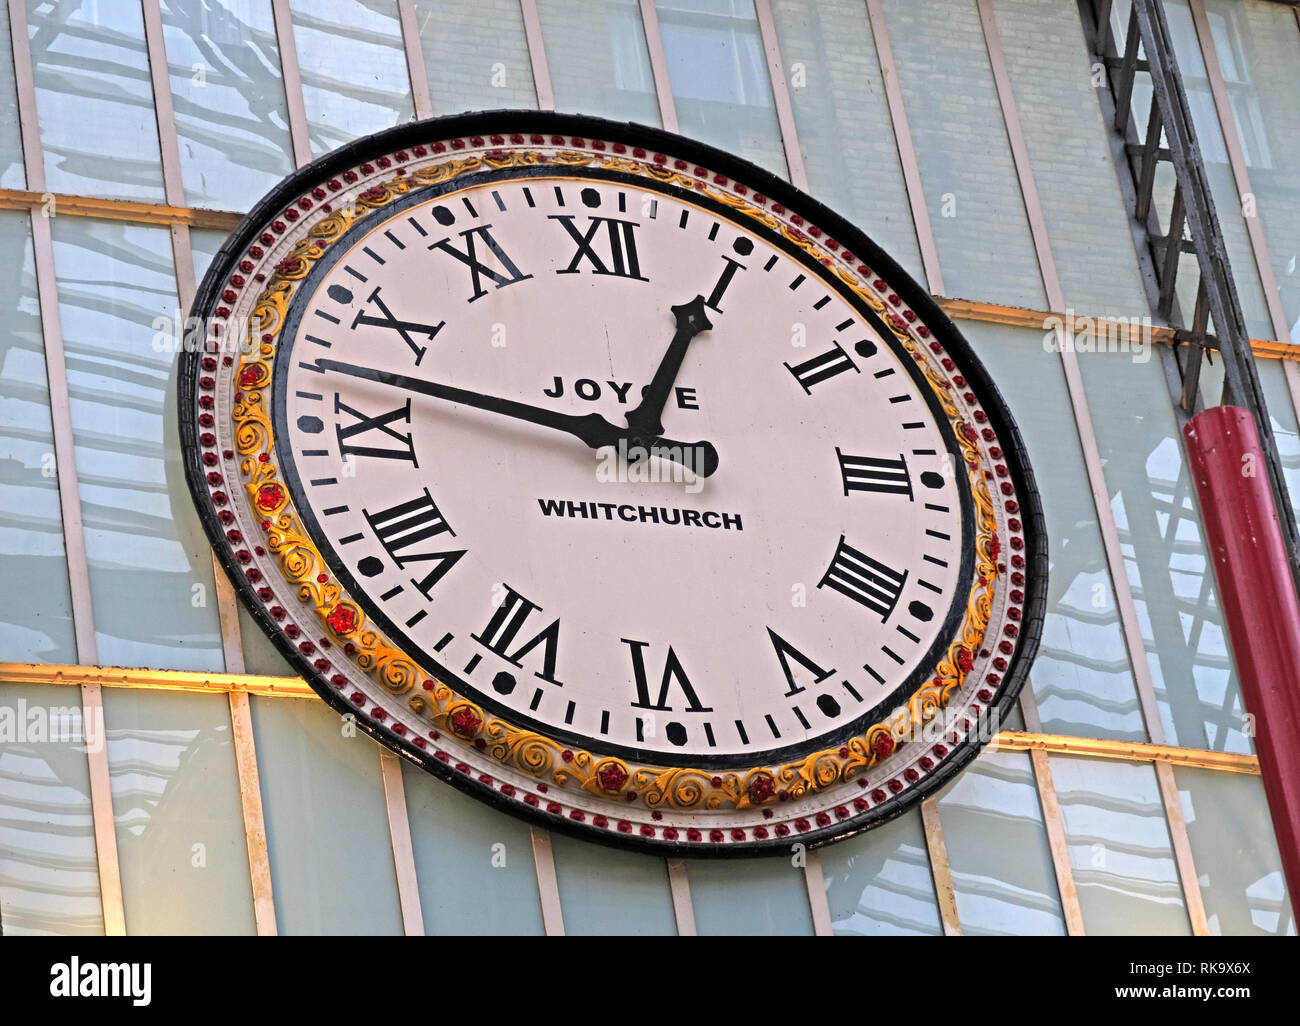 Joyce clock Whitchurch, at Liverpool Lime Street mainline railway station, Merseyside, England, UK, L1 1JD - Stock Image